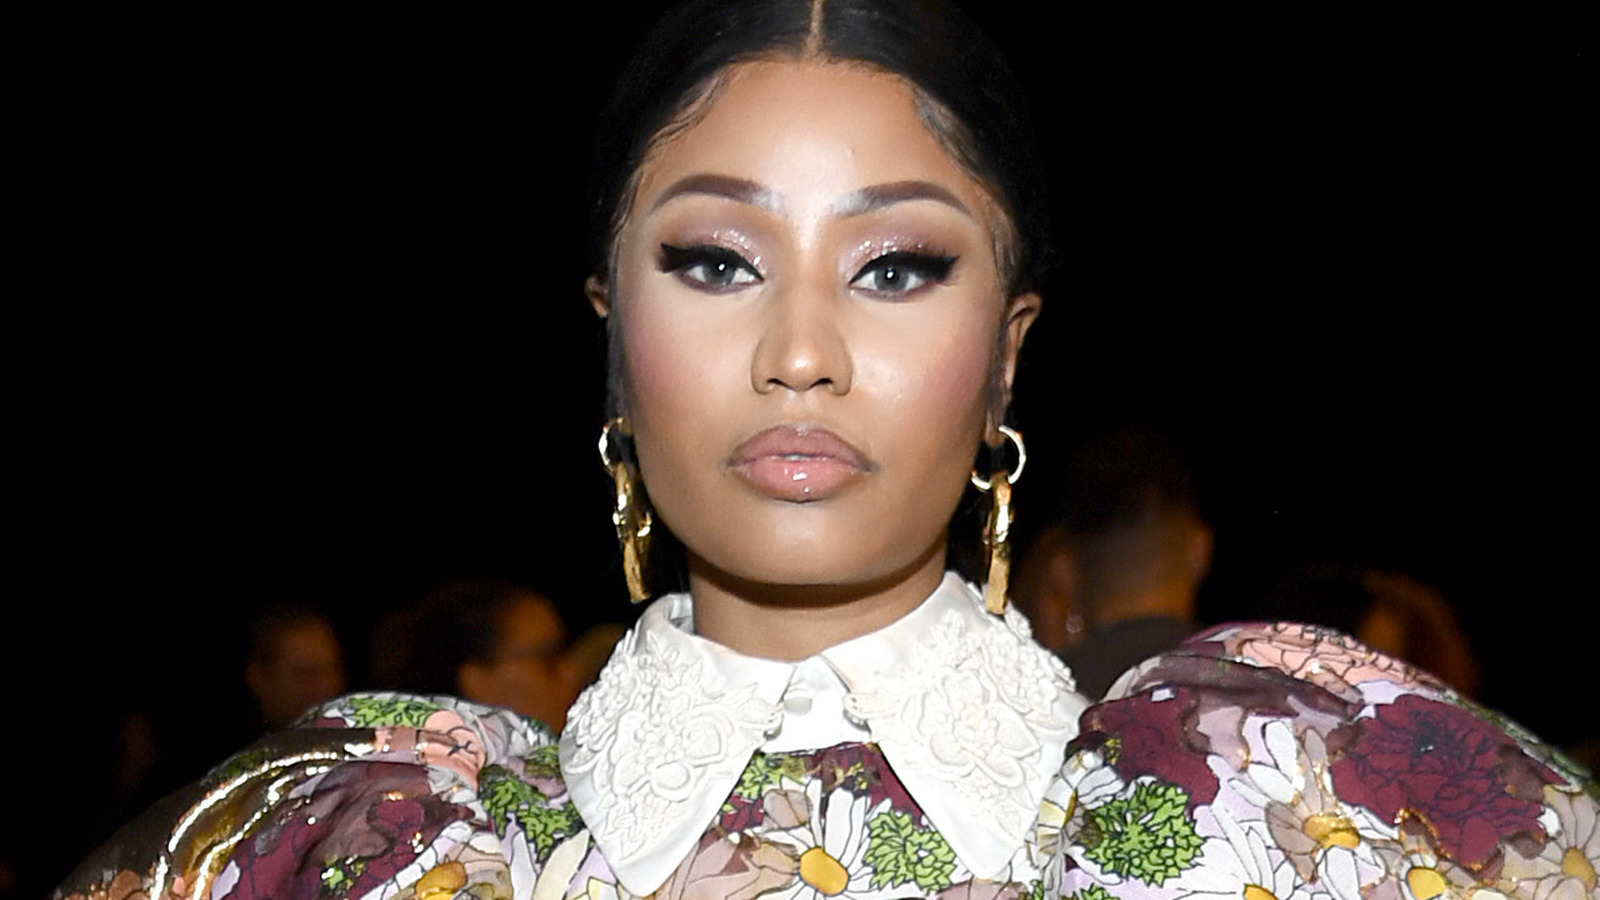 Here's the details about Nicki Minaj's docuseries